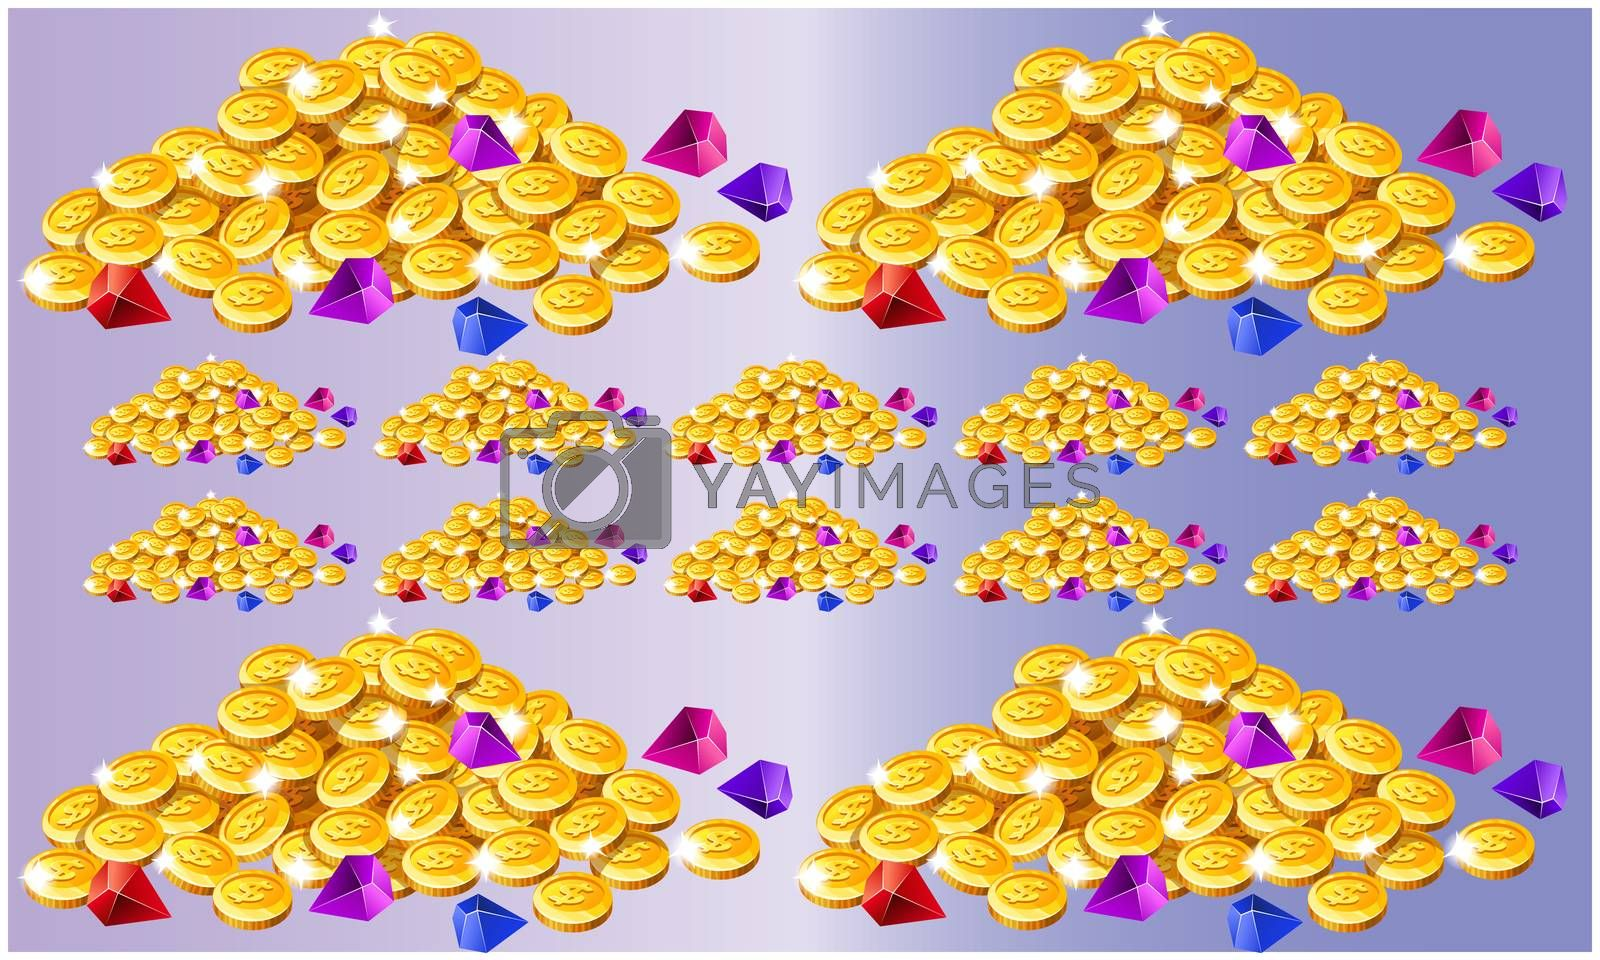 collections of coins on abstract background